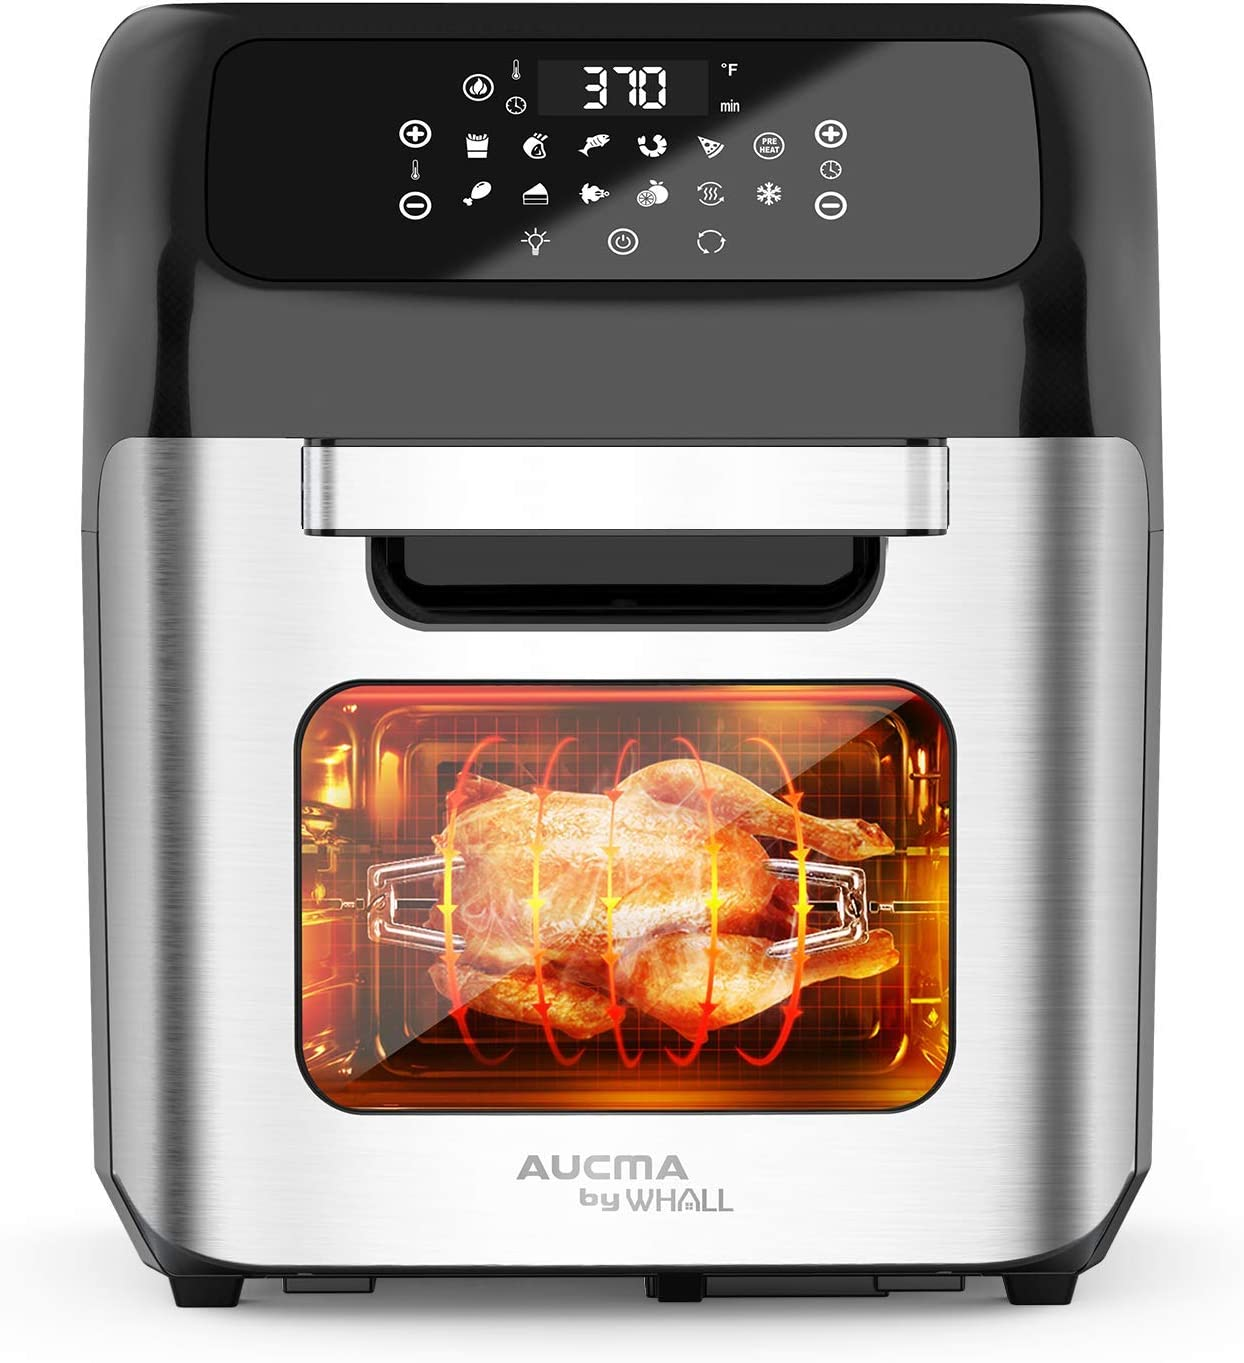 whall Air Fryer, 13QT Air Fryer Oven, Family Rotisserie Oven, 1700W Electric Air Fryer Toaster Oven, Tilt LED Digital Touchscreen, 12-in-1 Presets for Heating, Baking, Roasting & Dehydrating, Accessories & Cookbook (Renewed)